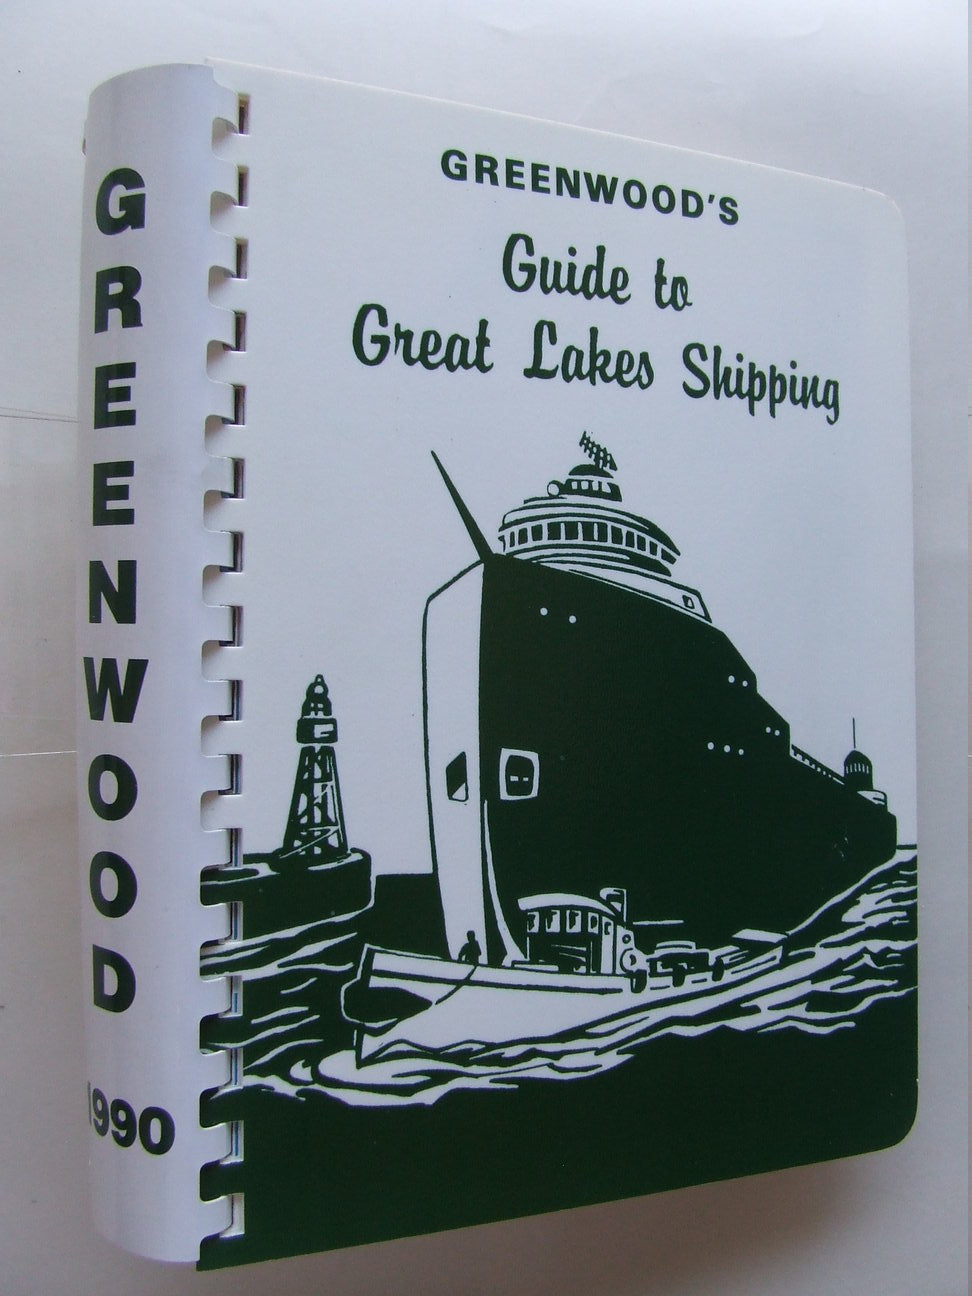 Greenwood's Guide to Great Lakes Shipping